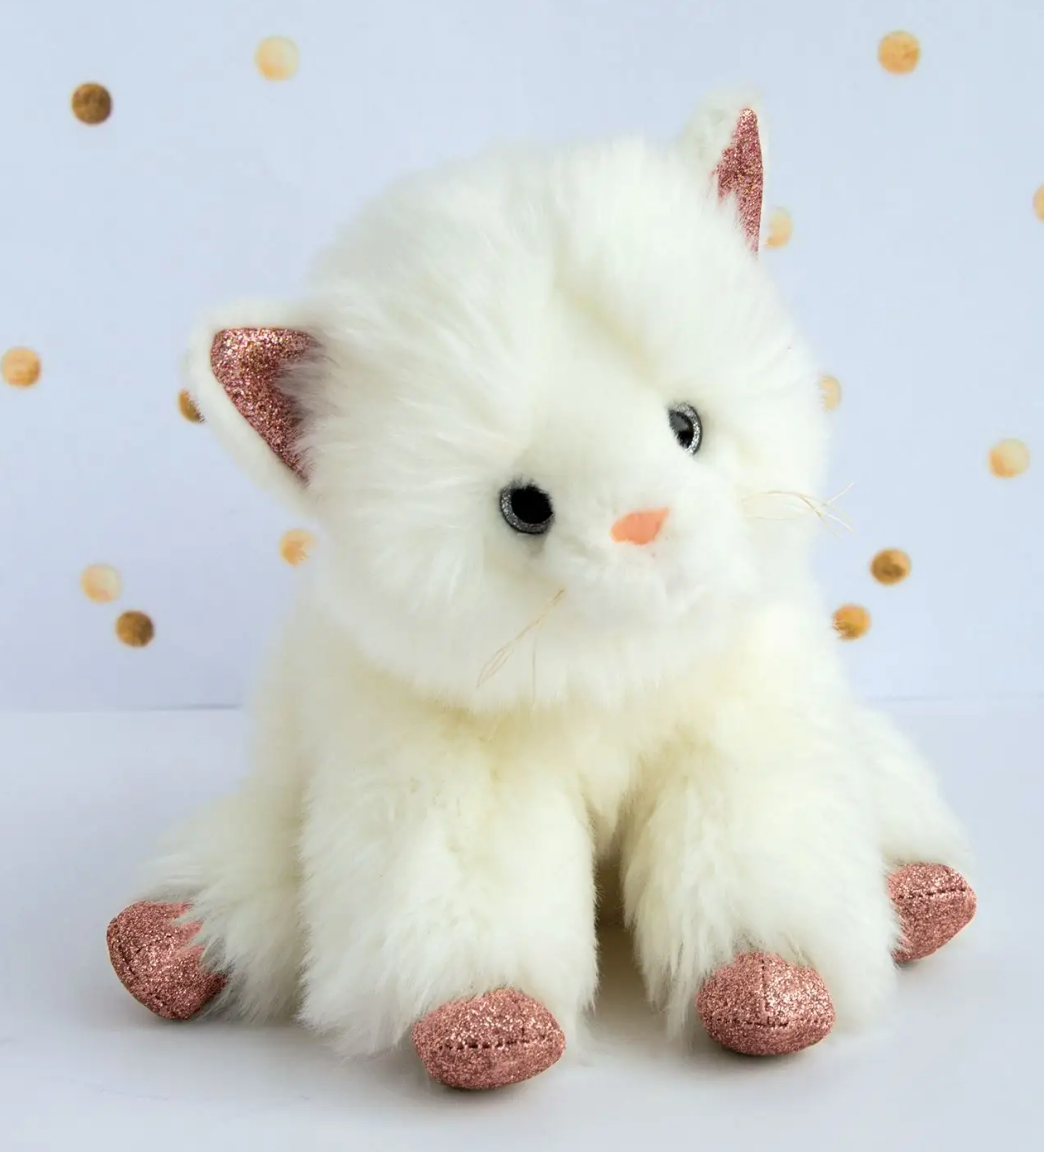 Cat Stuffed Animal with Pink Glitter Accents